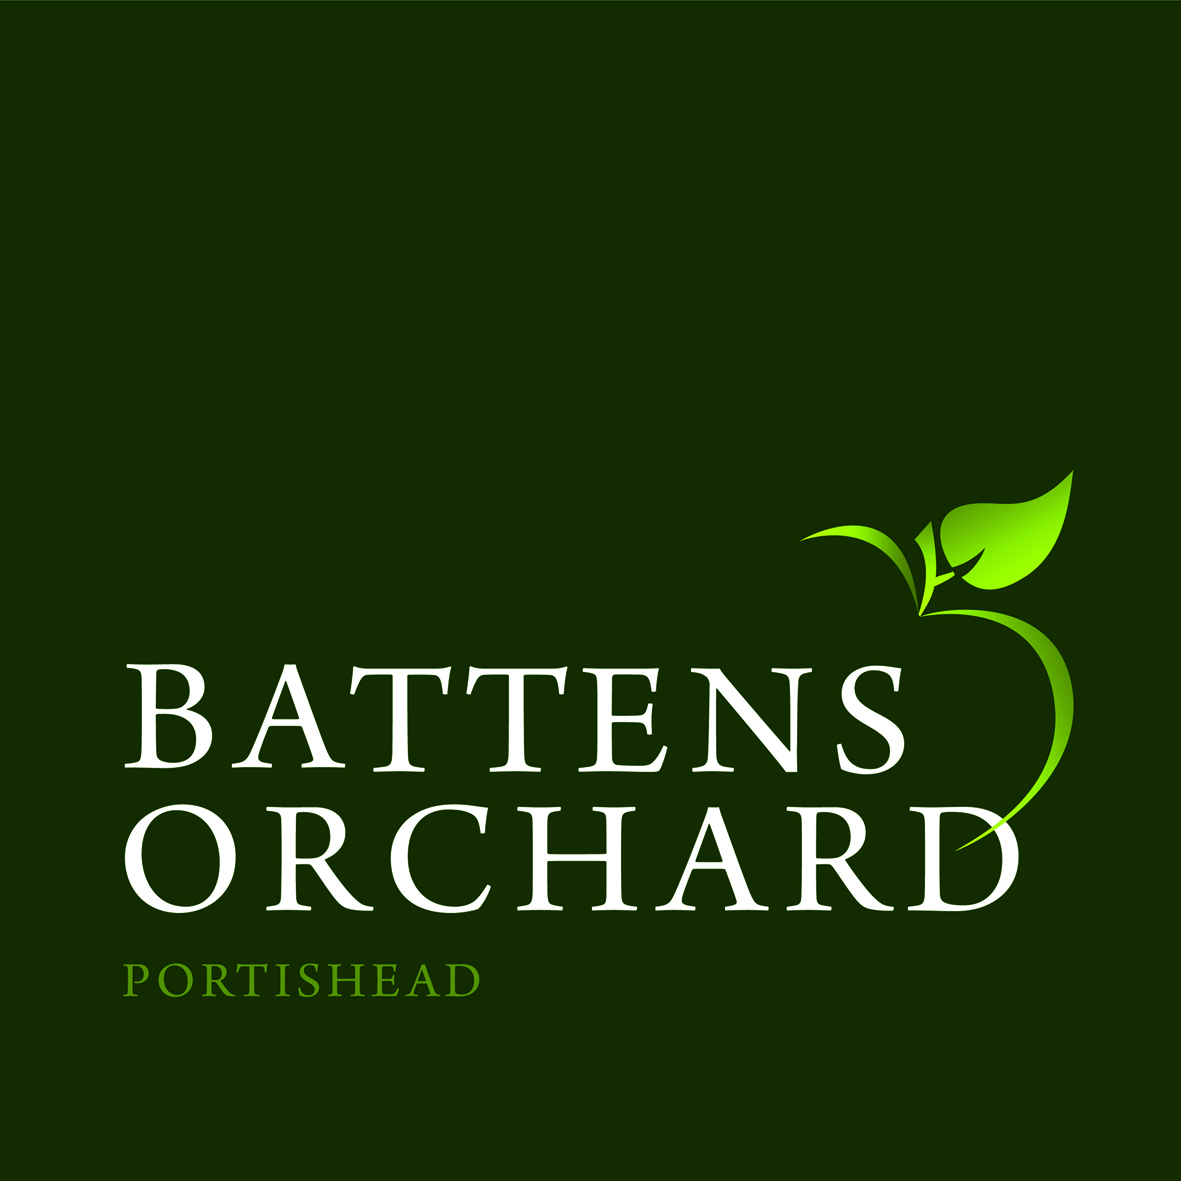 Available Now - Battens Orchard